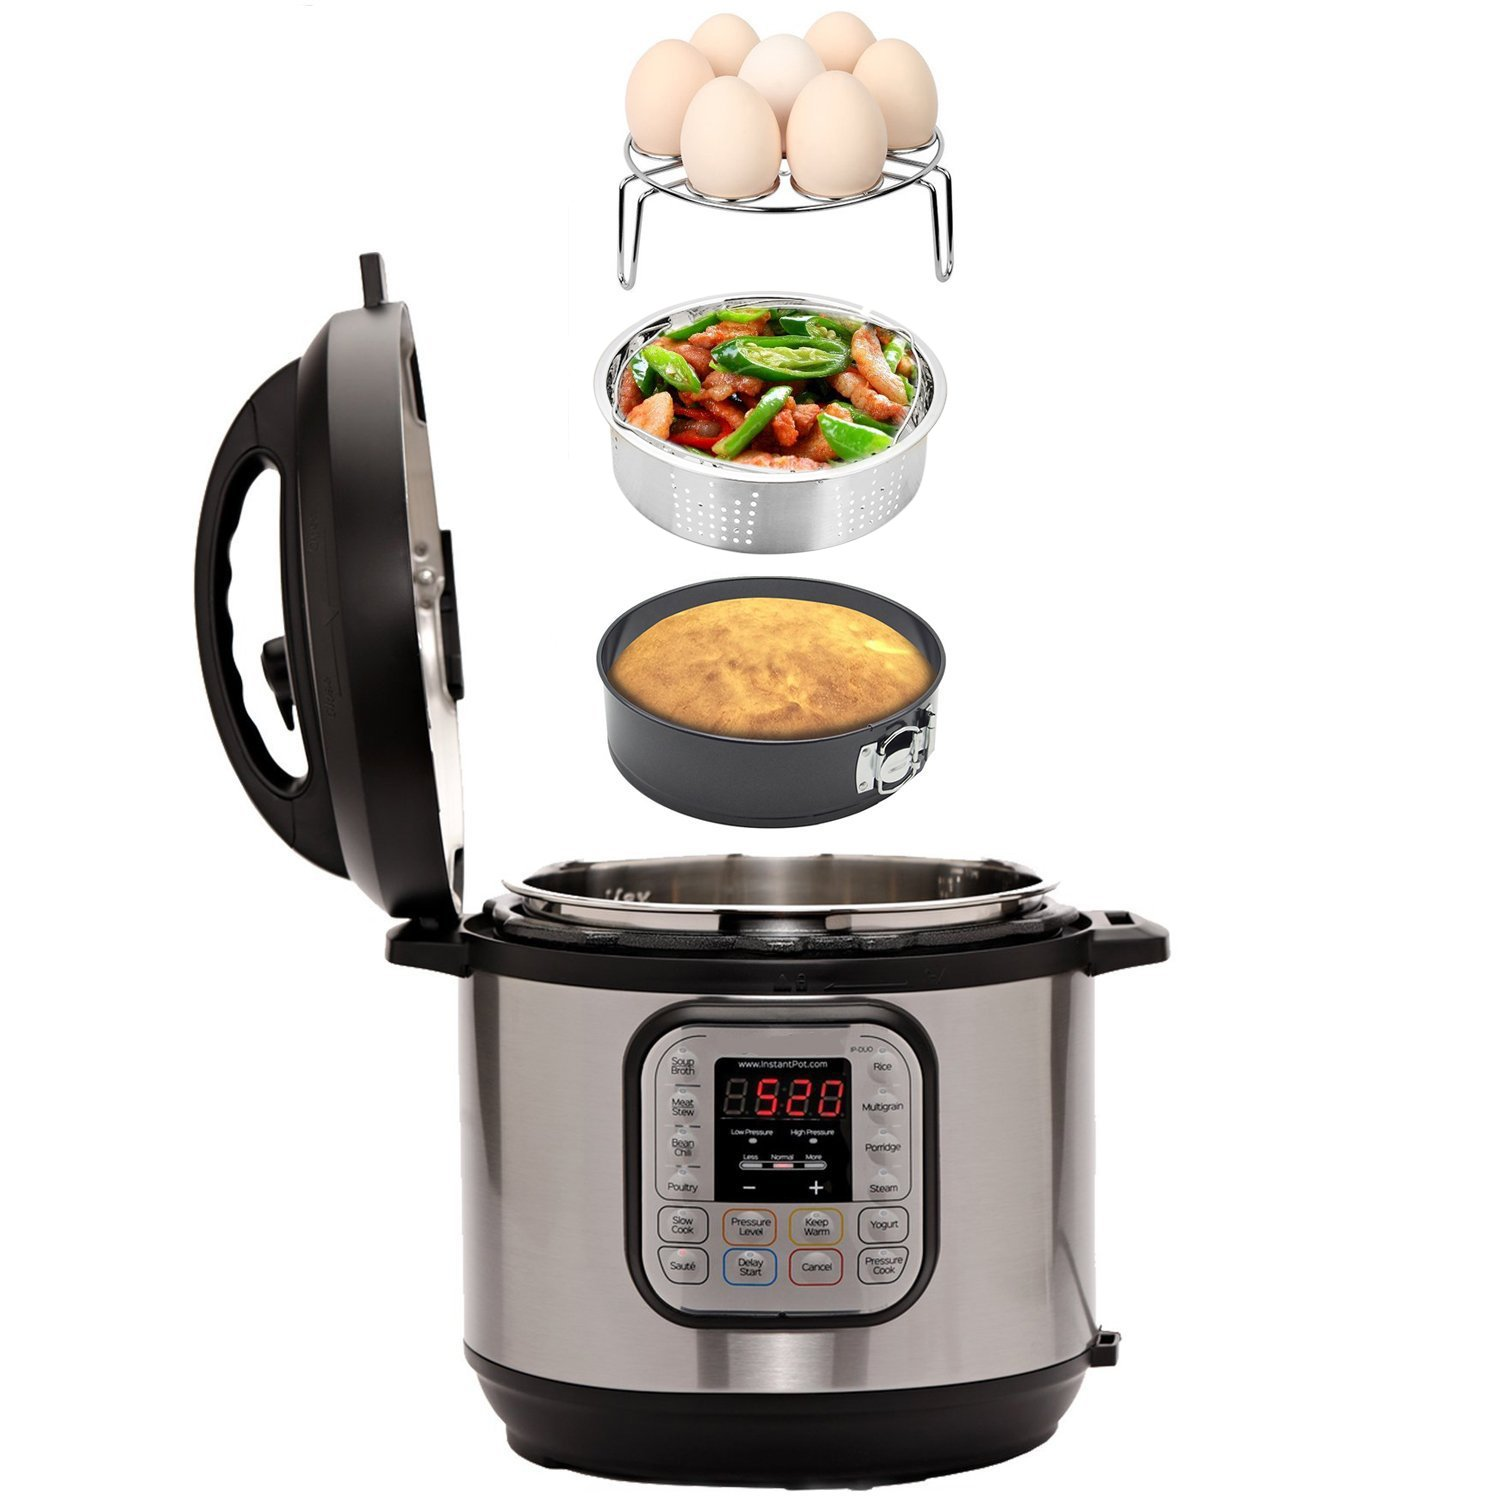 Instant Pot Accessories Set with Steamer Basket, Egg Steamer Rack, Non-stick Springform Pan, Steaming Stand, 1 Pair Silicone Cooking Pot Mitts 5 Piece by JOYORUN (Image #7)